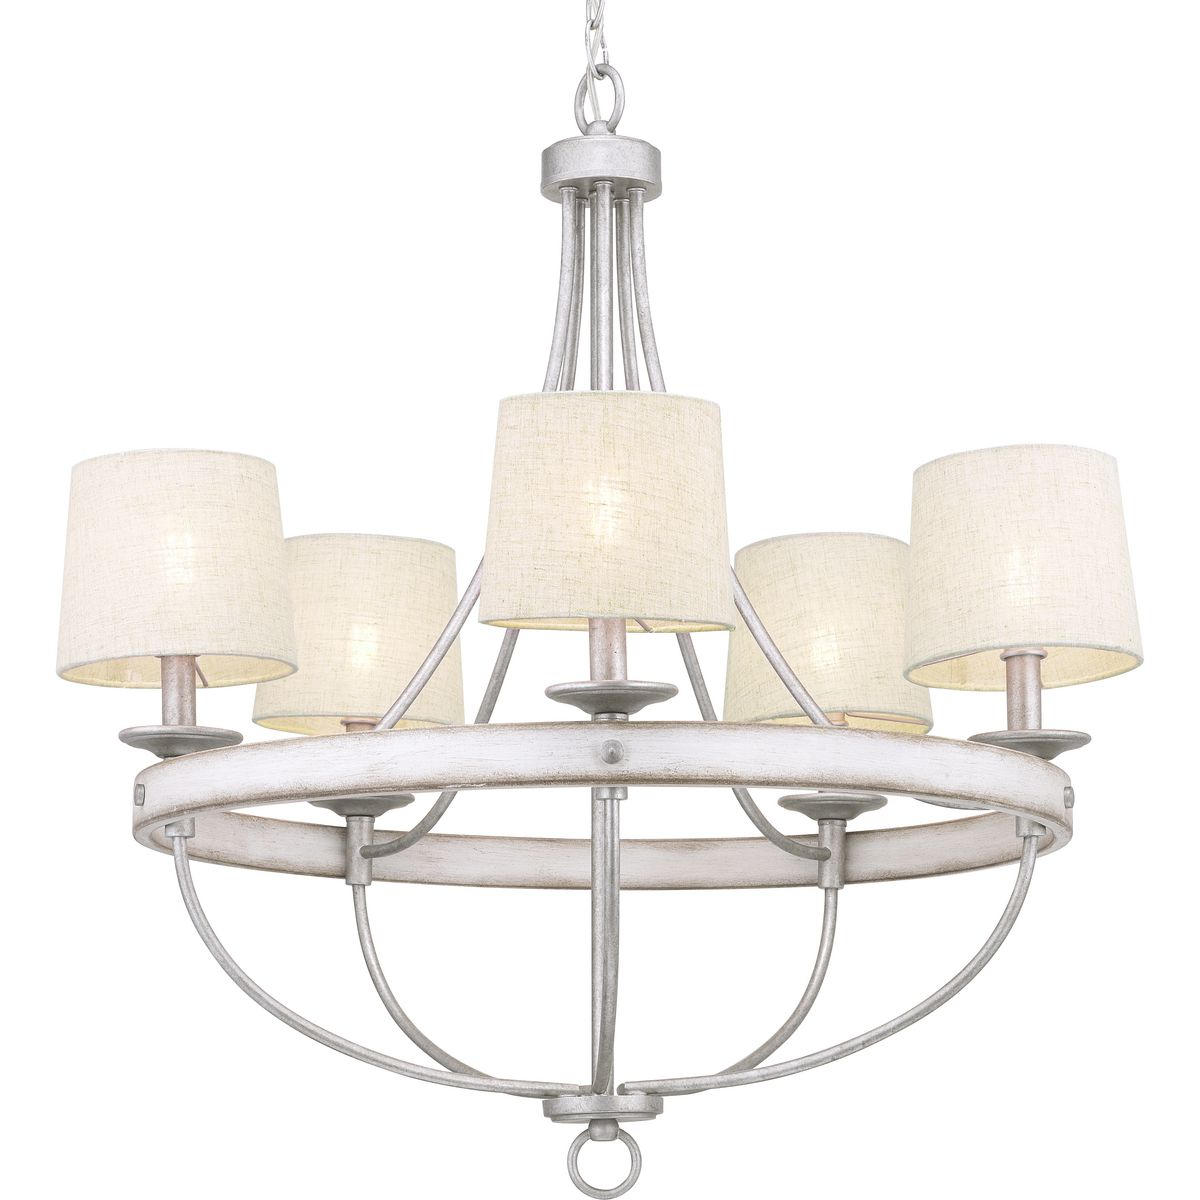 Light Collections: Gulliver Collection Five-Light Chandelier